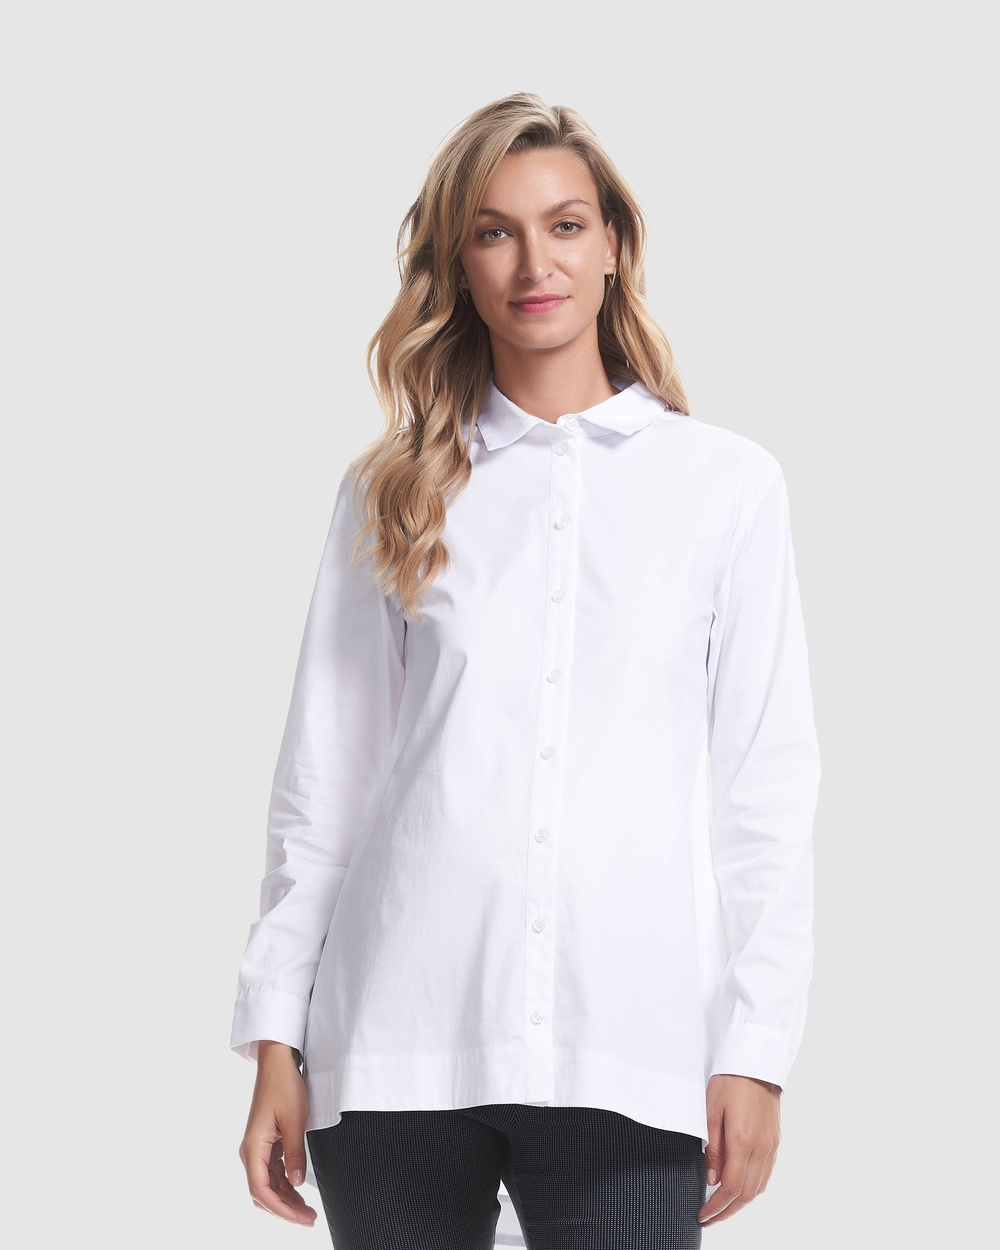 Soon Maternity Essential Maternity Shirt Tops White Essential Maternity Shirt